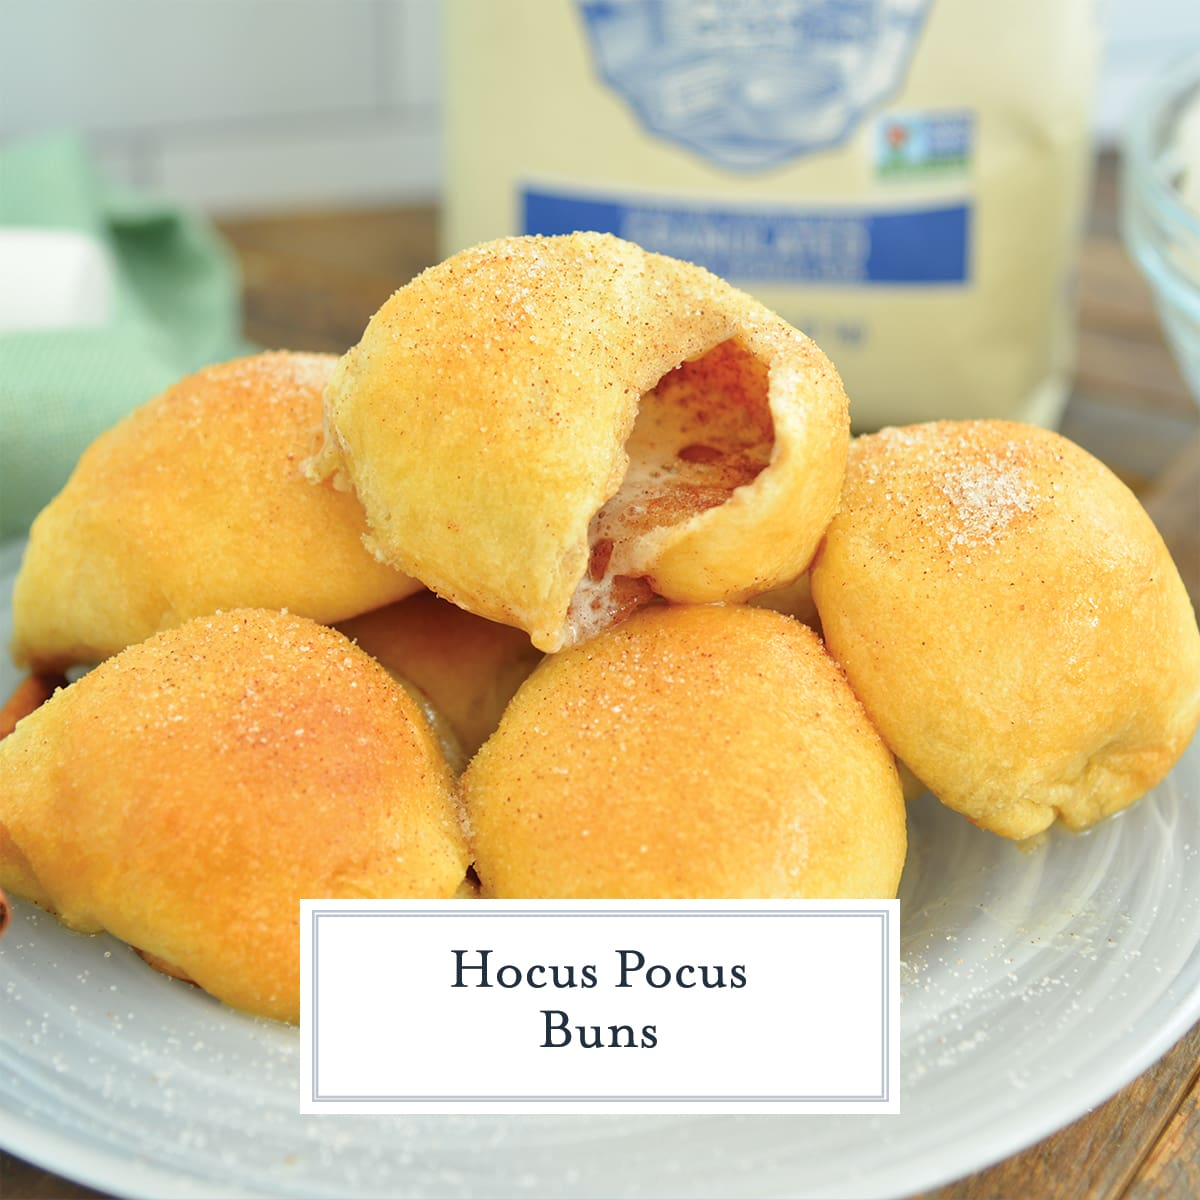 pile of hocus pocus buns with one cracked open